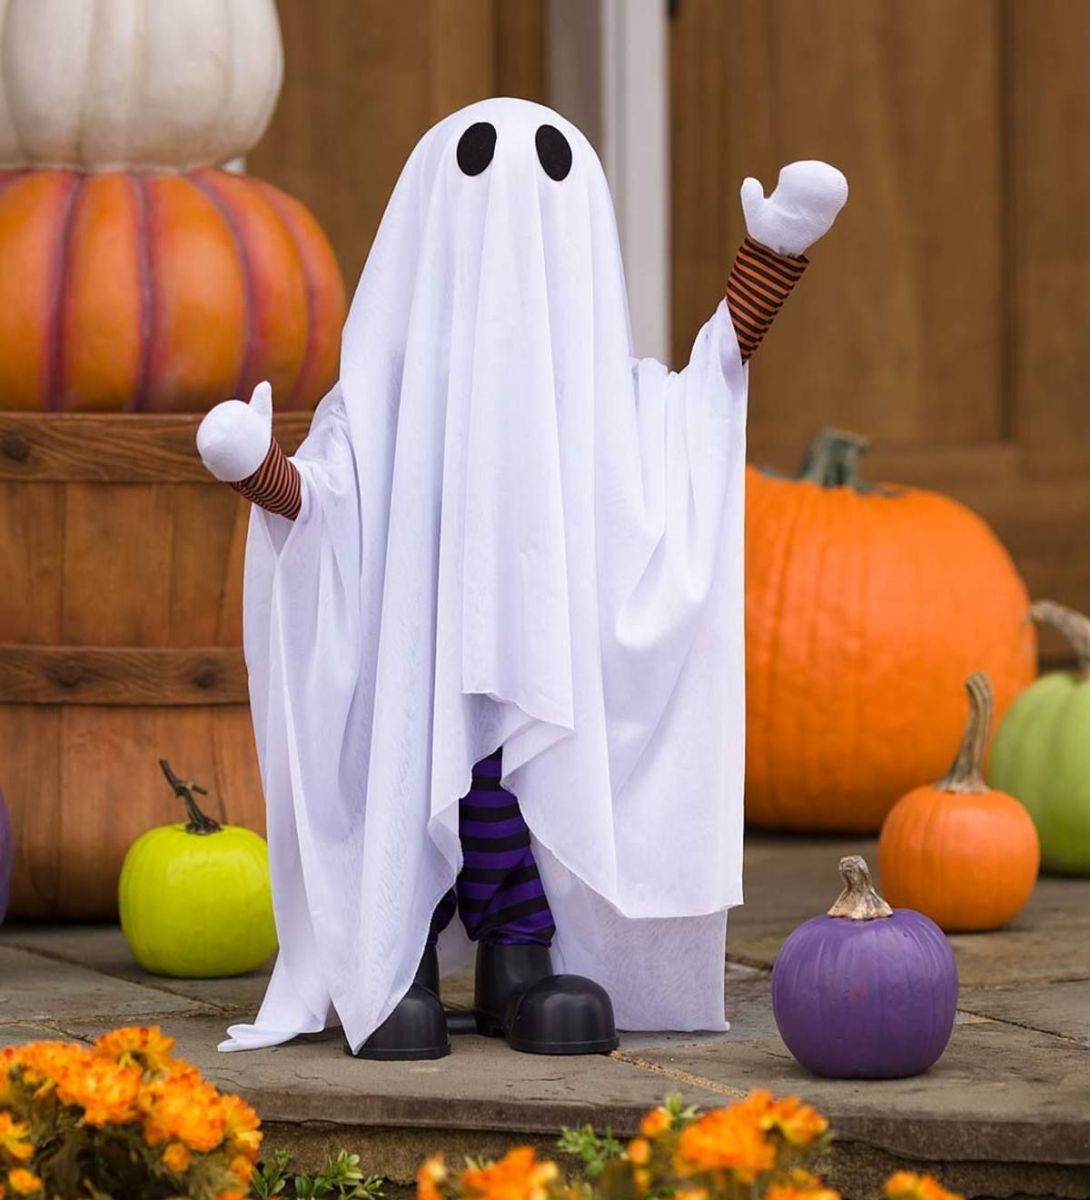 Motion Activated Halloween Decorations